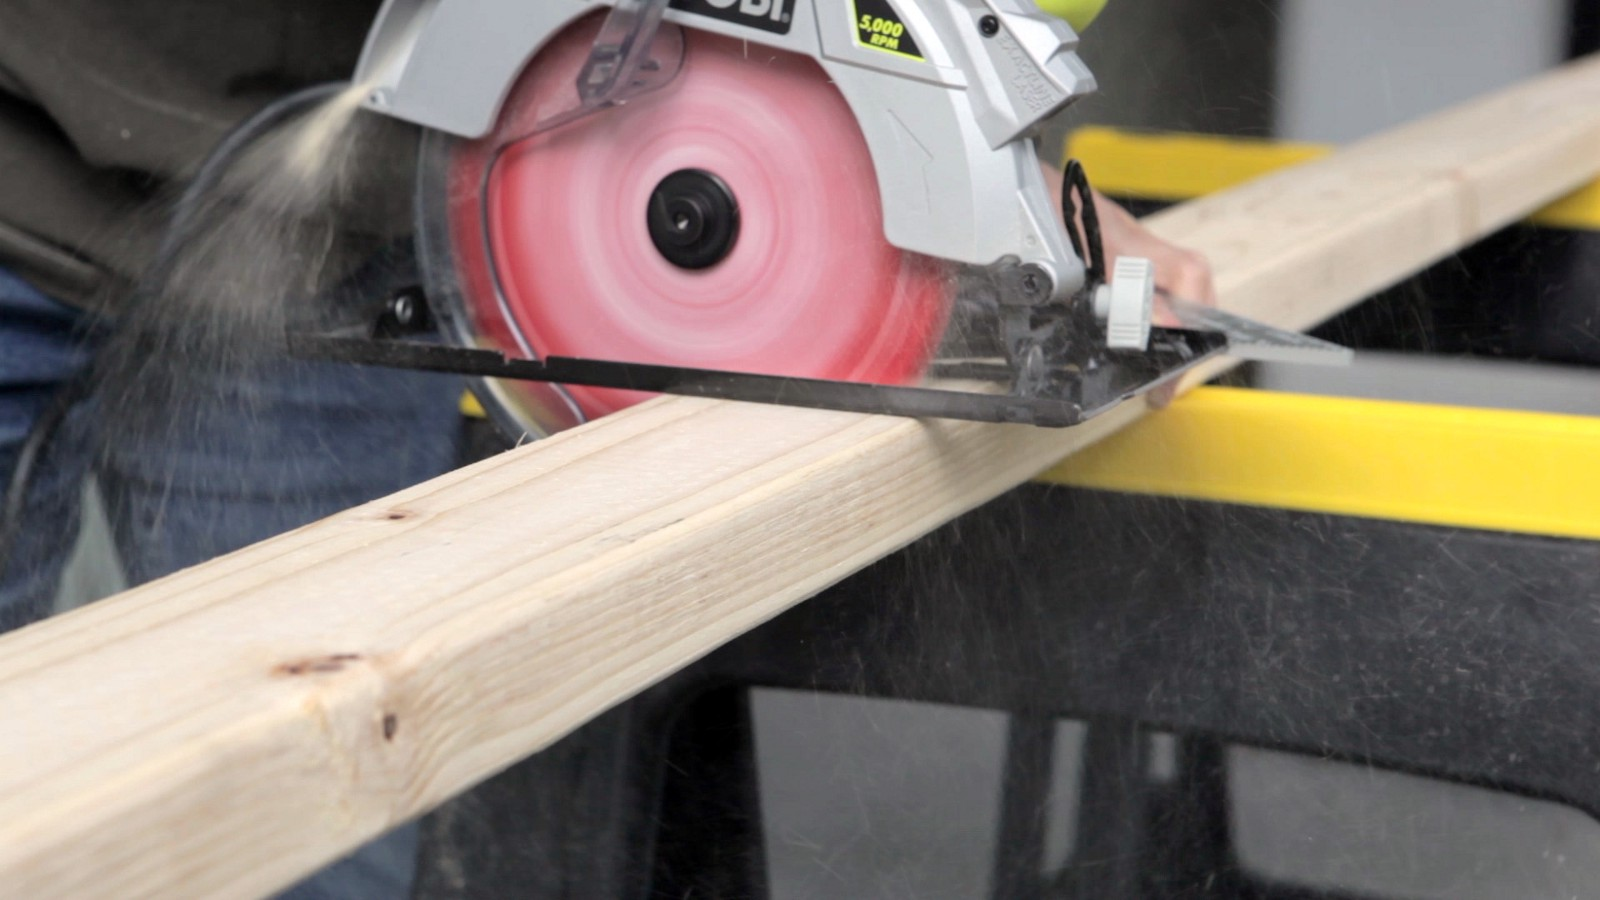 Sawing 2x4 Studs To Size